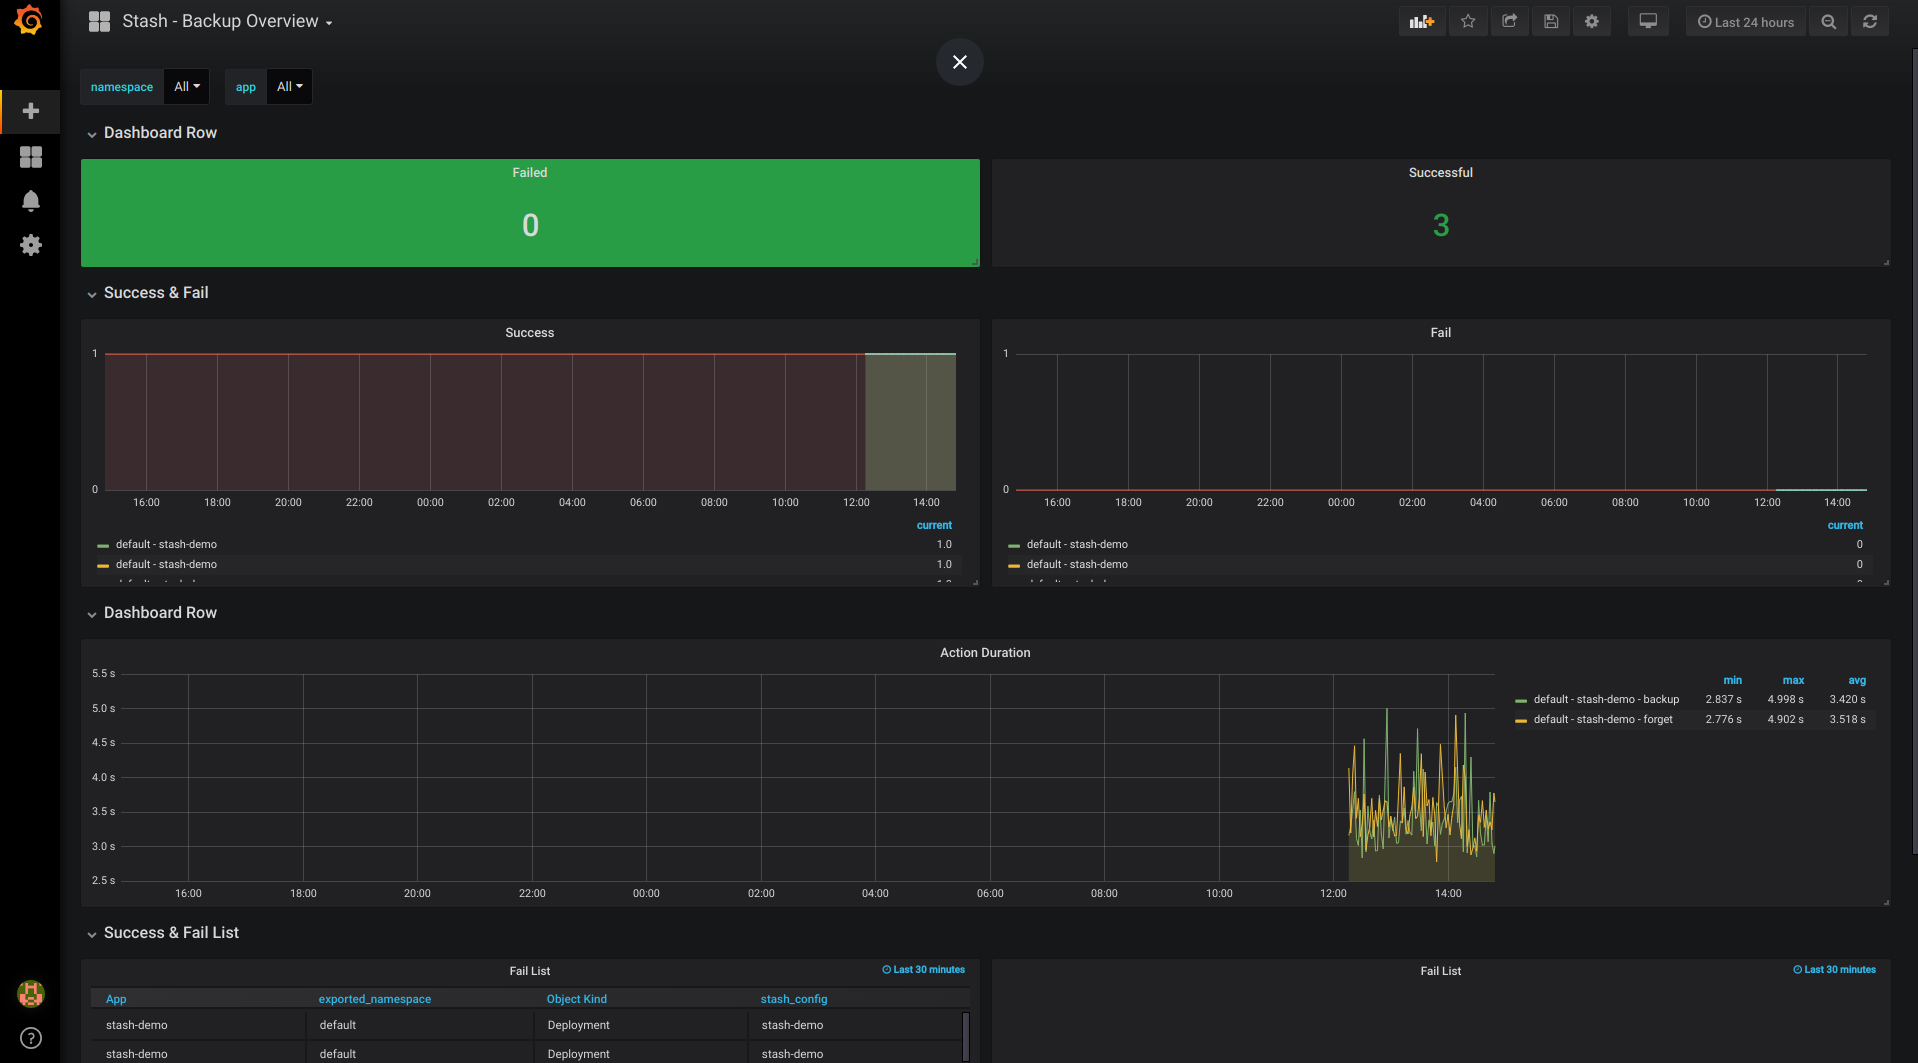 Grafana: Stash dashboard